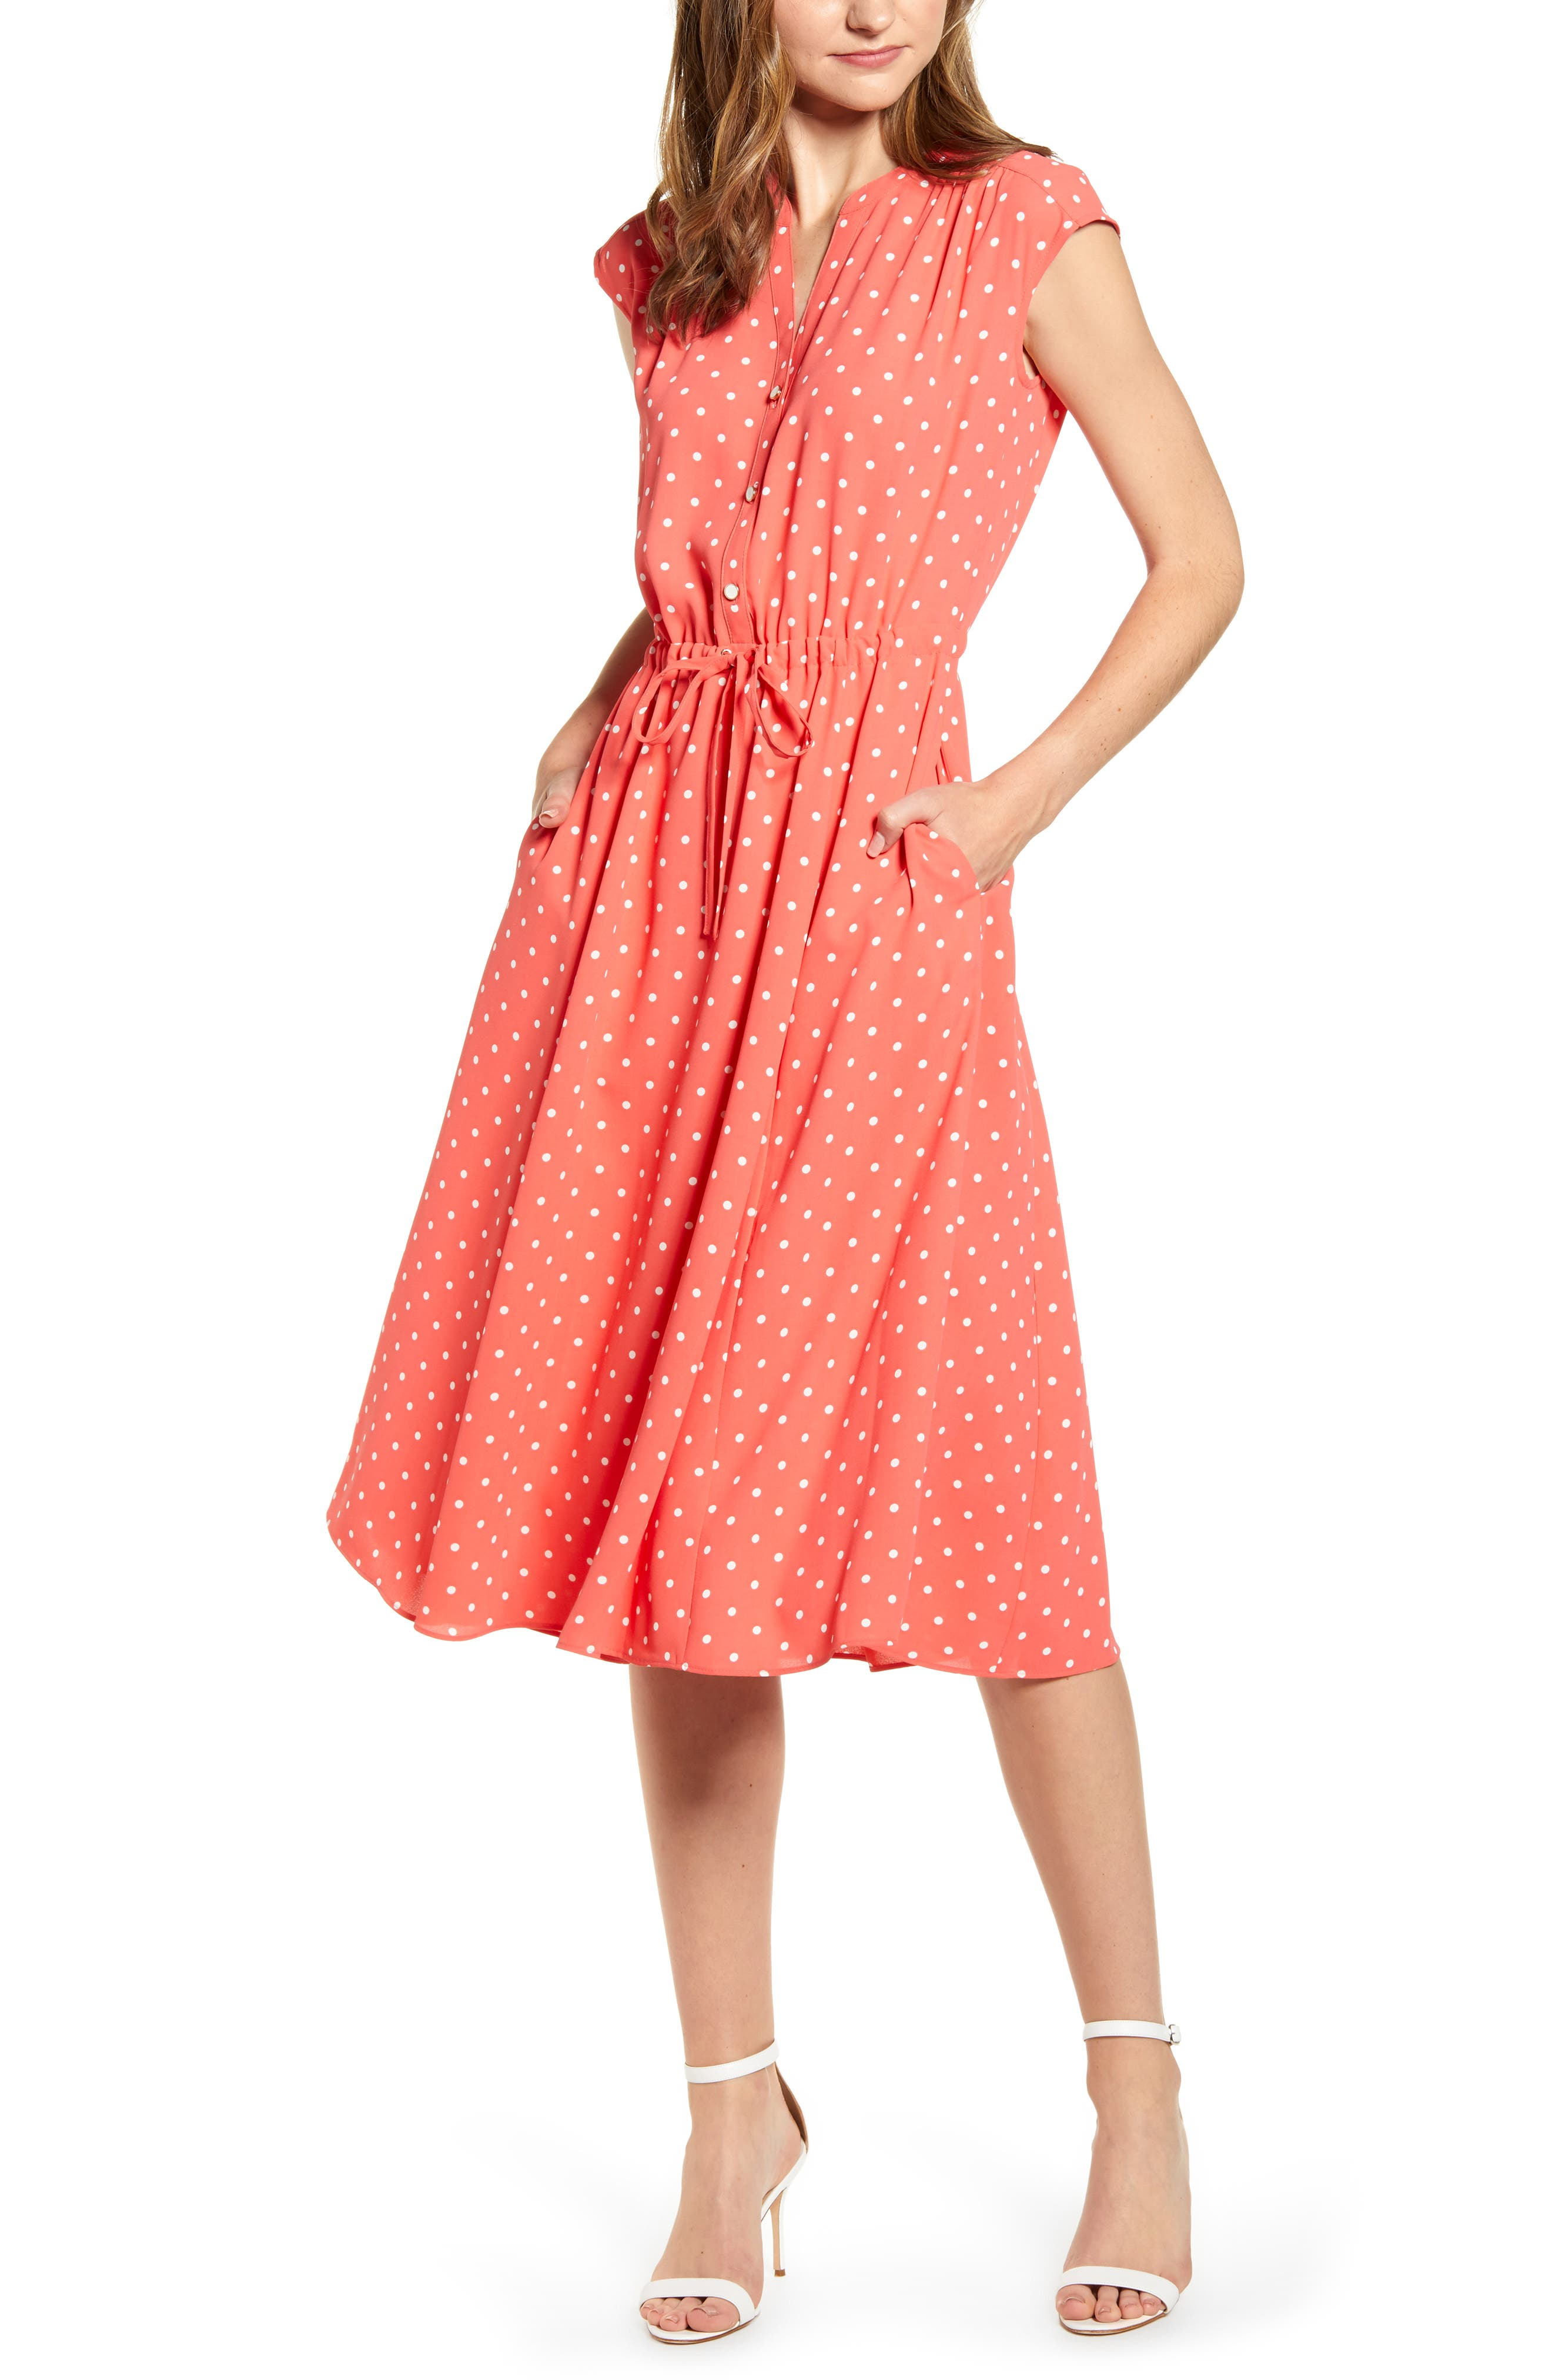 Anne Klein Dot Print A-Line Dress, Pink